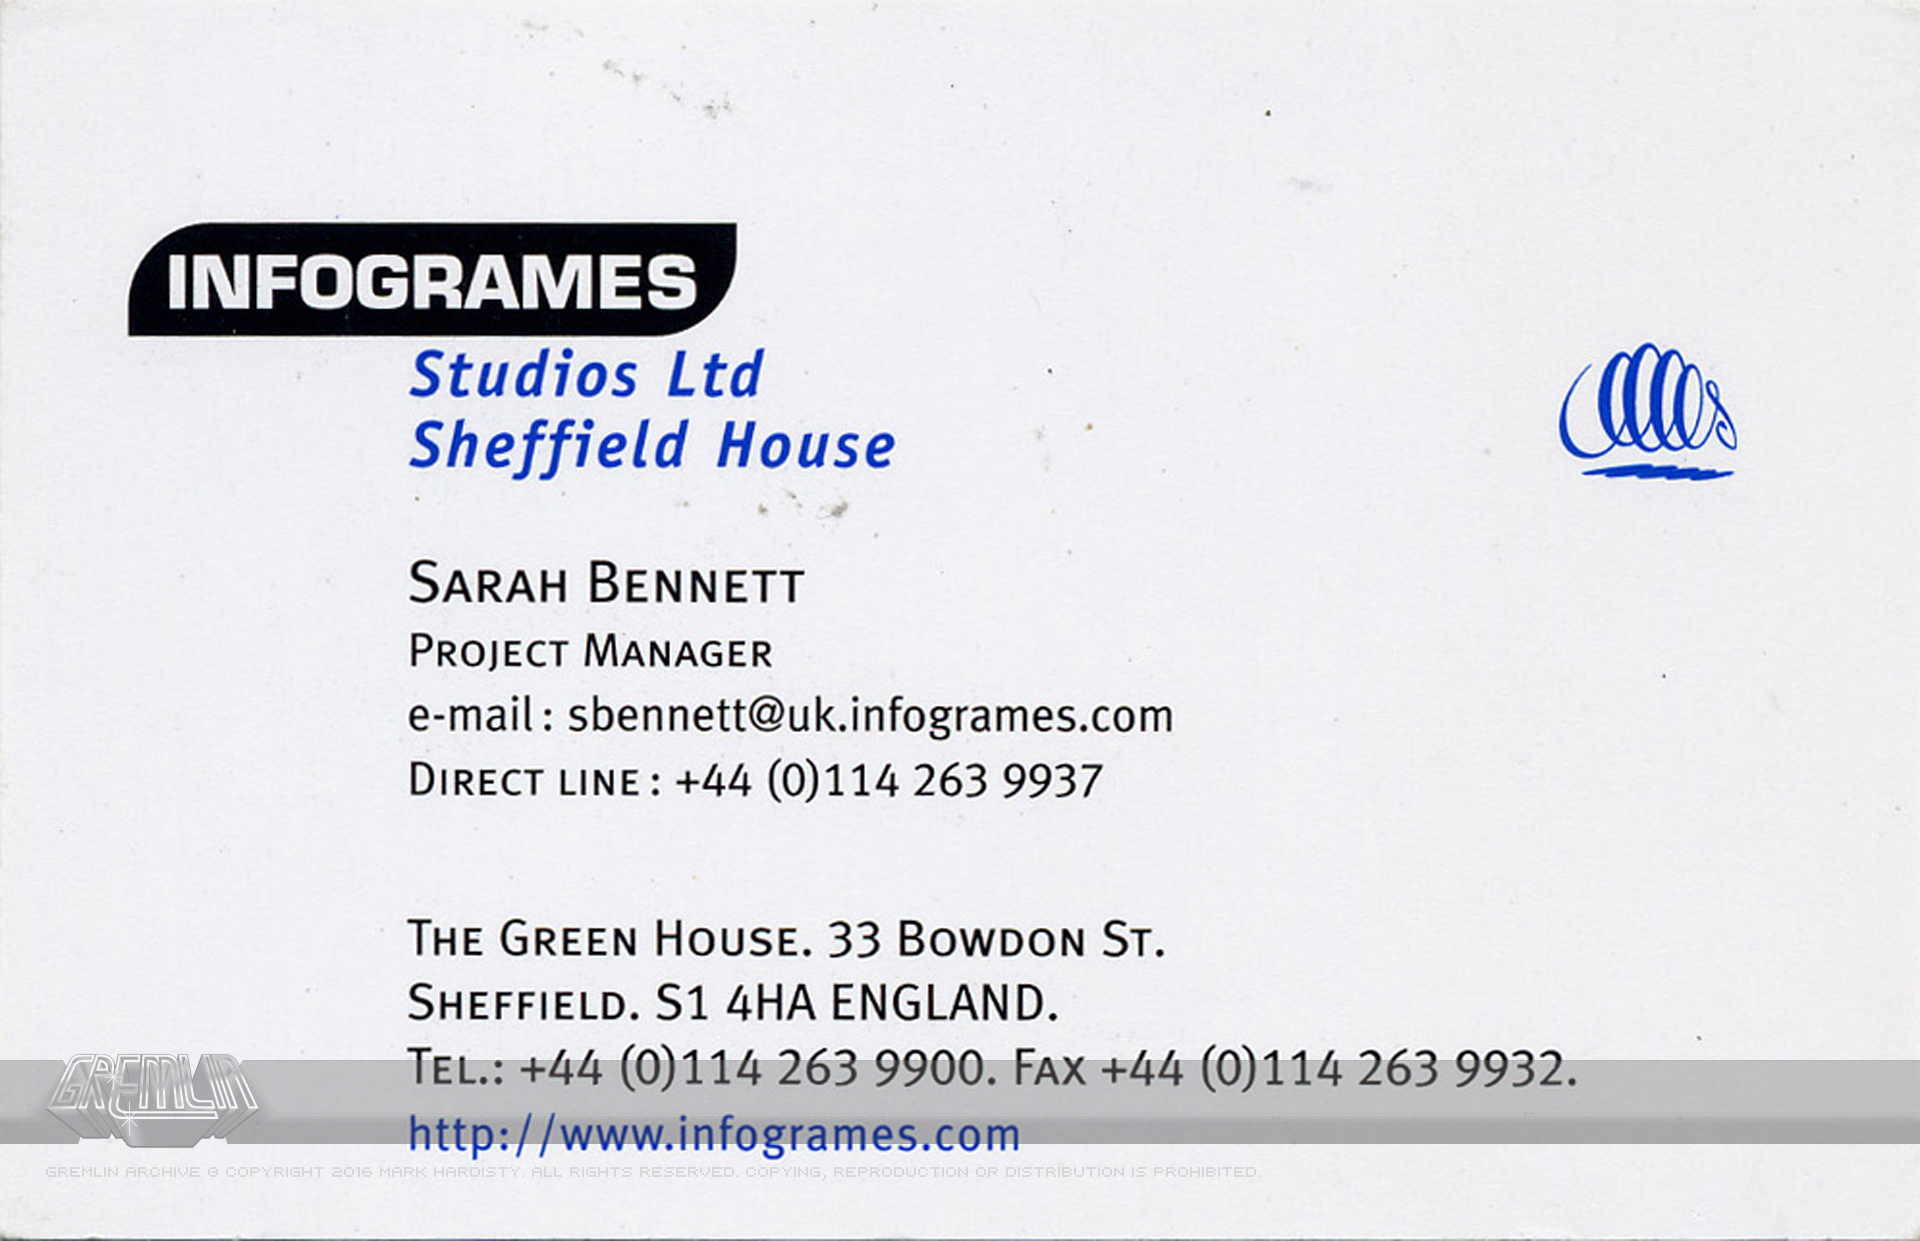 Business cards the gremlin graphics archive sarah bennett infogrames sheffield house business card colourmoves Choice Image